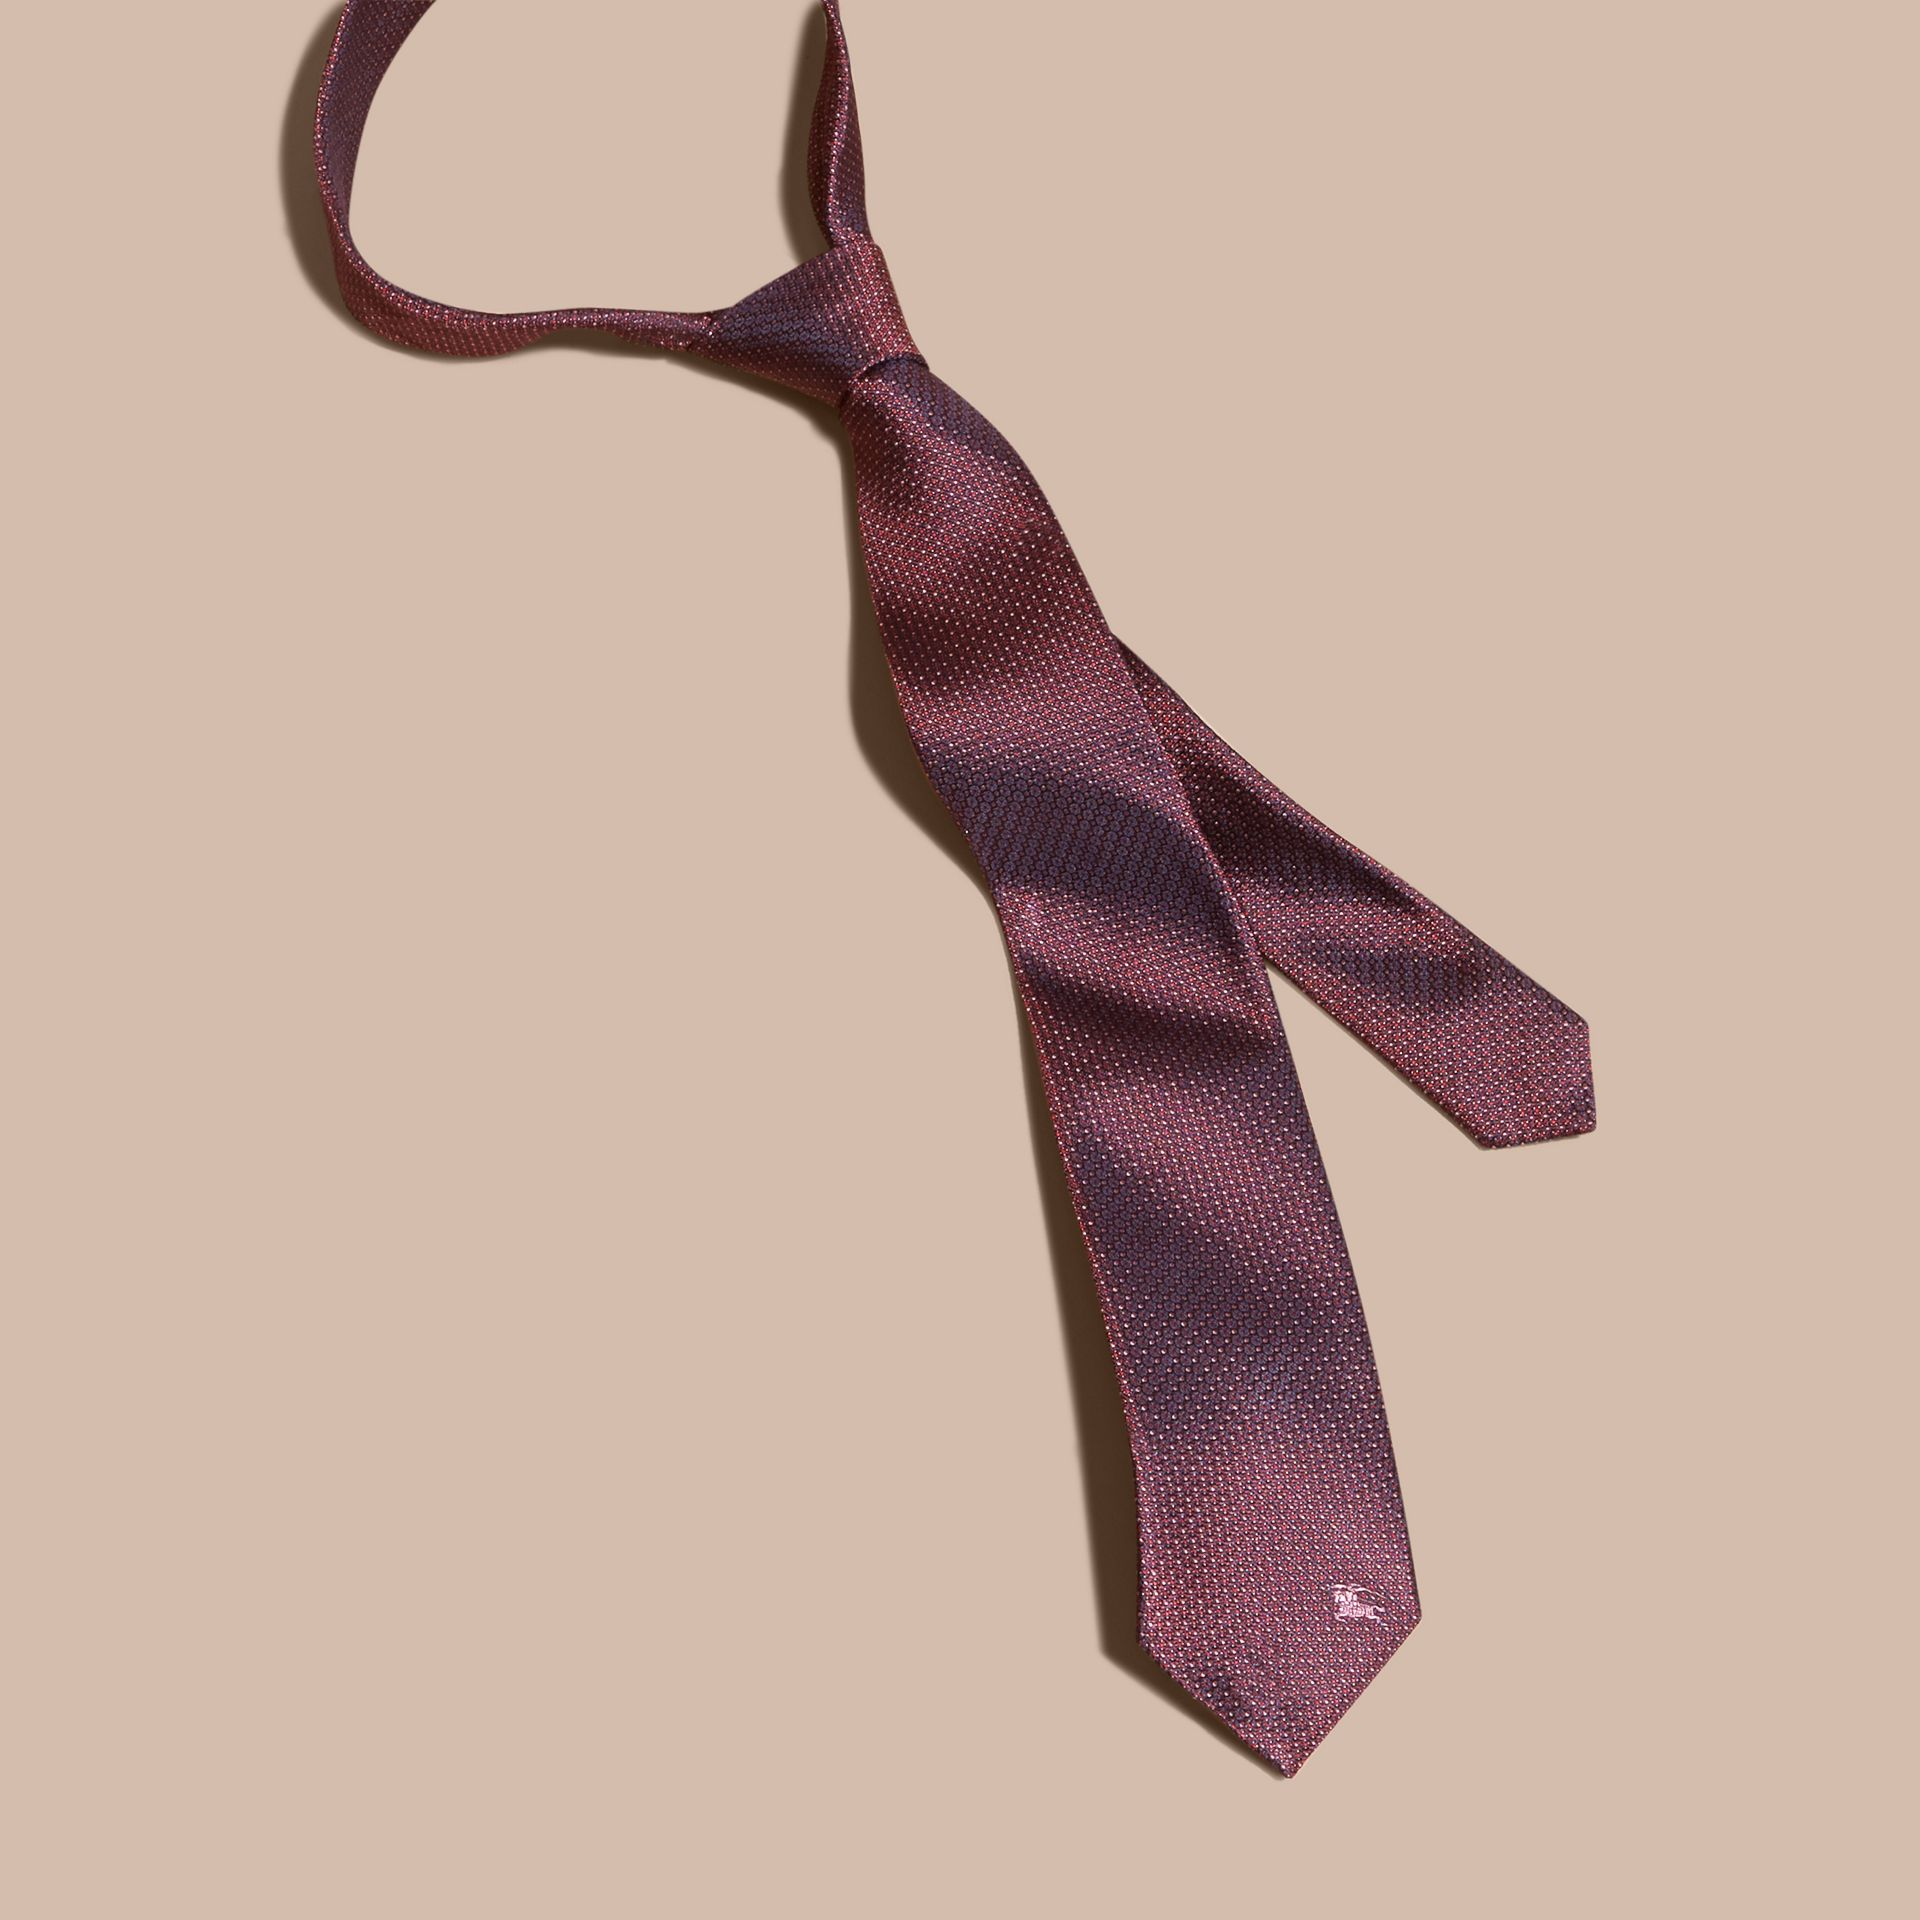 Modern Cut Patterned Silk Tie in Deep Claret - Men | Burberry - gallery image 4